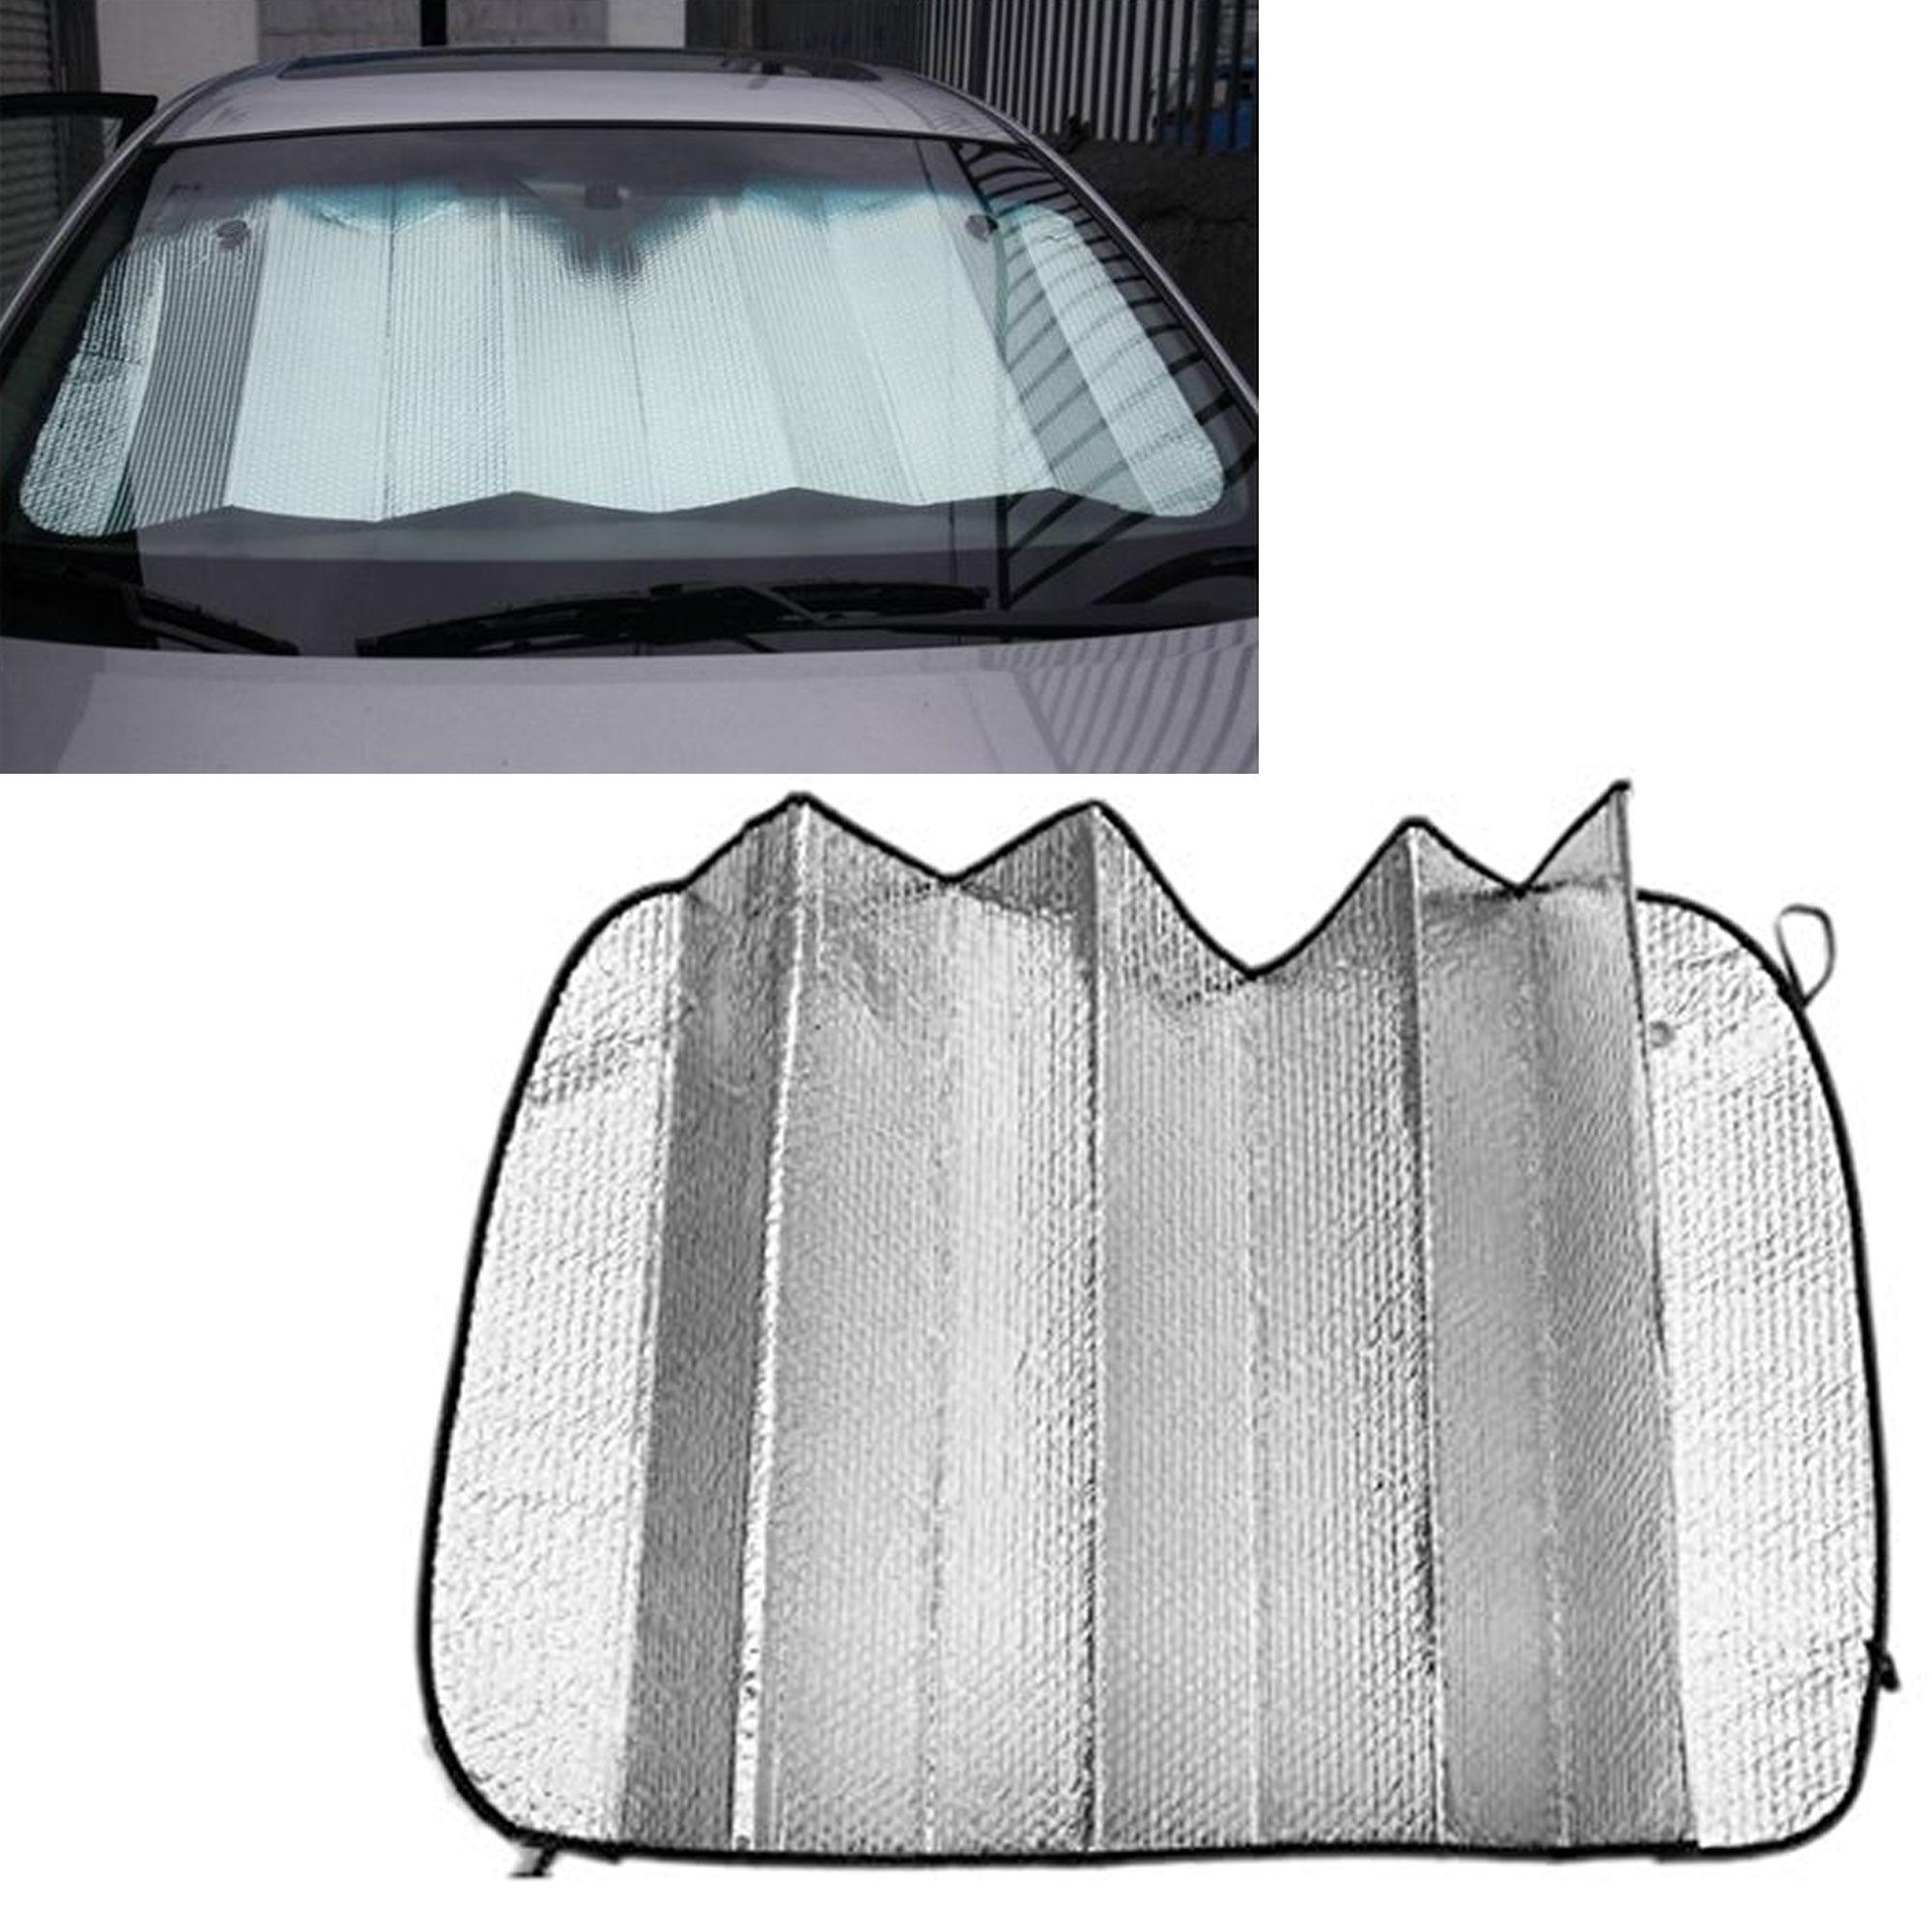 Truck Parts For Sale Accessories Online Brands Prices 1997 Nissan Pick Up M Air Flow Sensor Foldable Windshield Sunshade Reflective Sun Block Car Cover Visor Silver